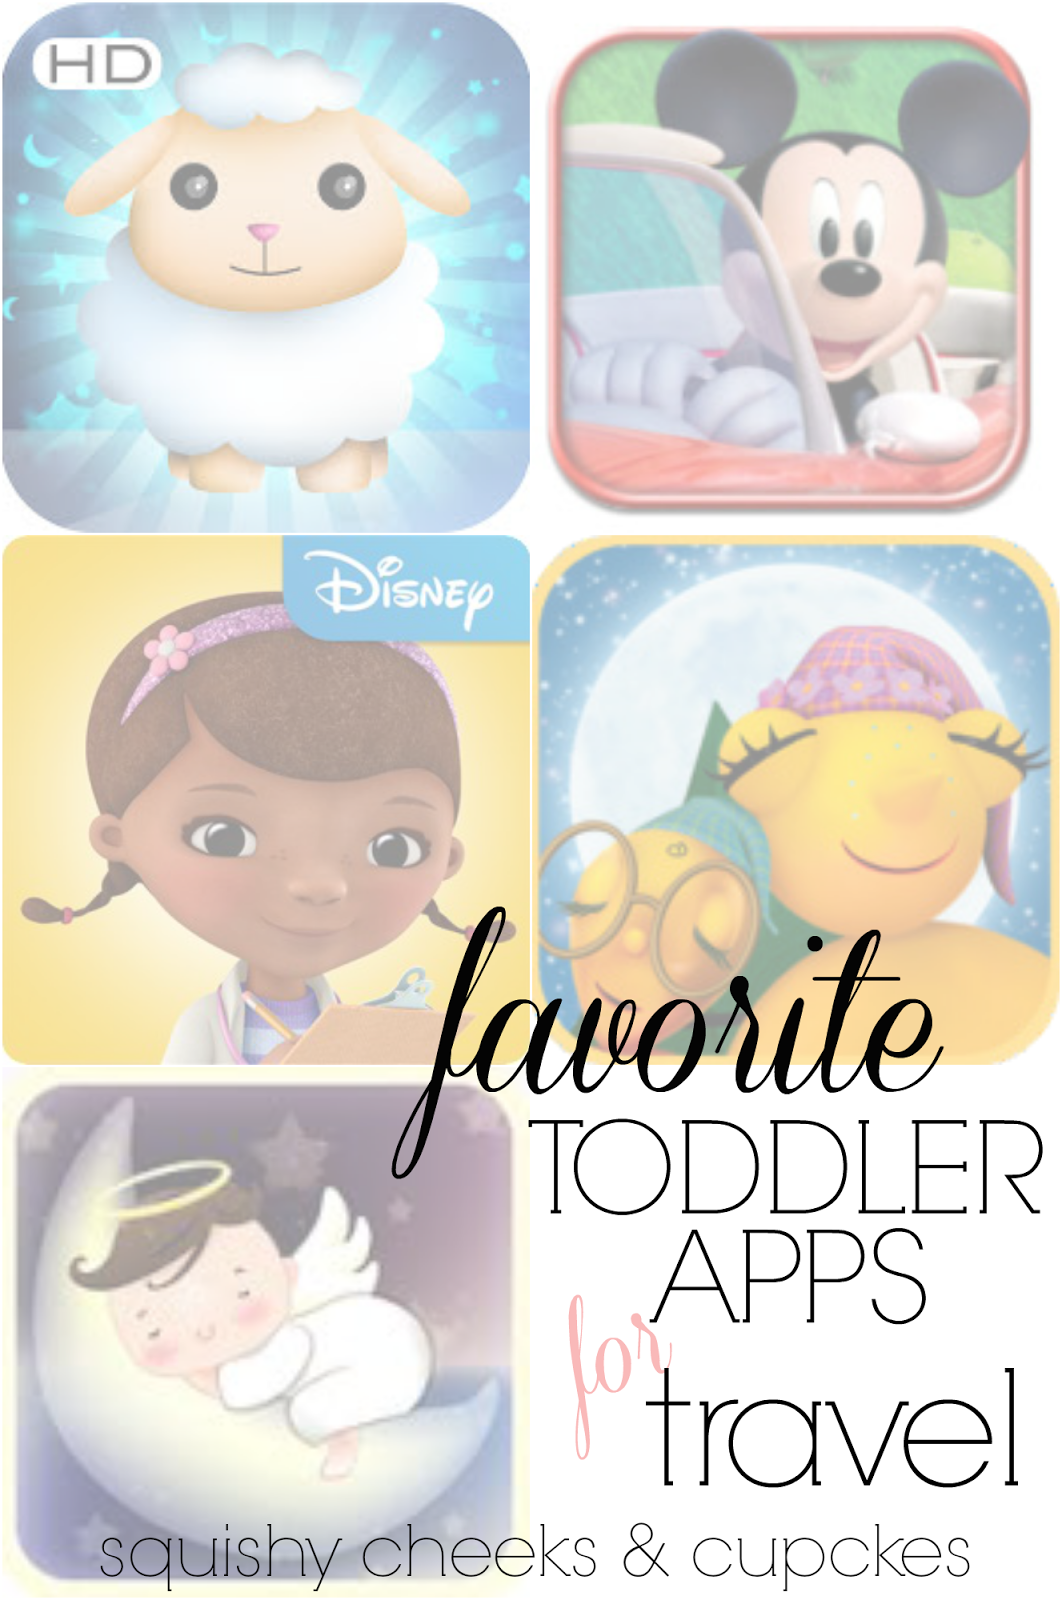 Squishy Cheeks & Cupcakes Apps